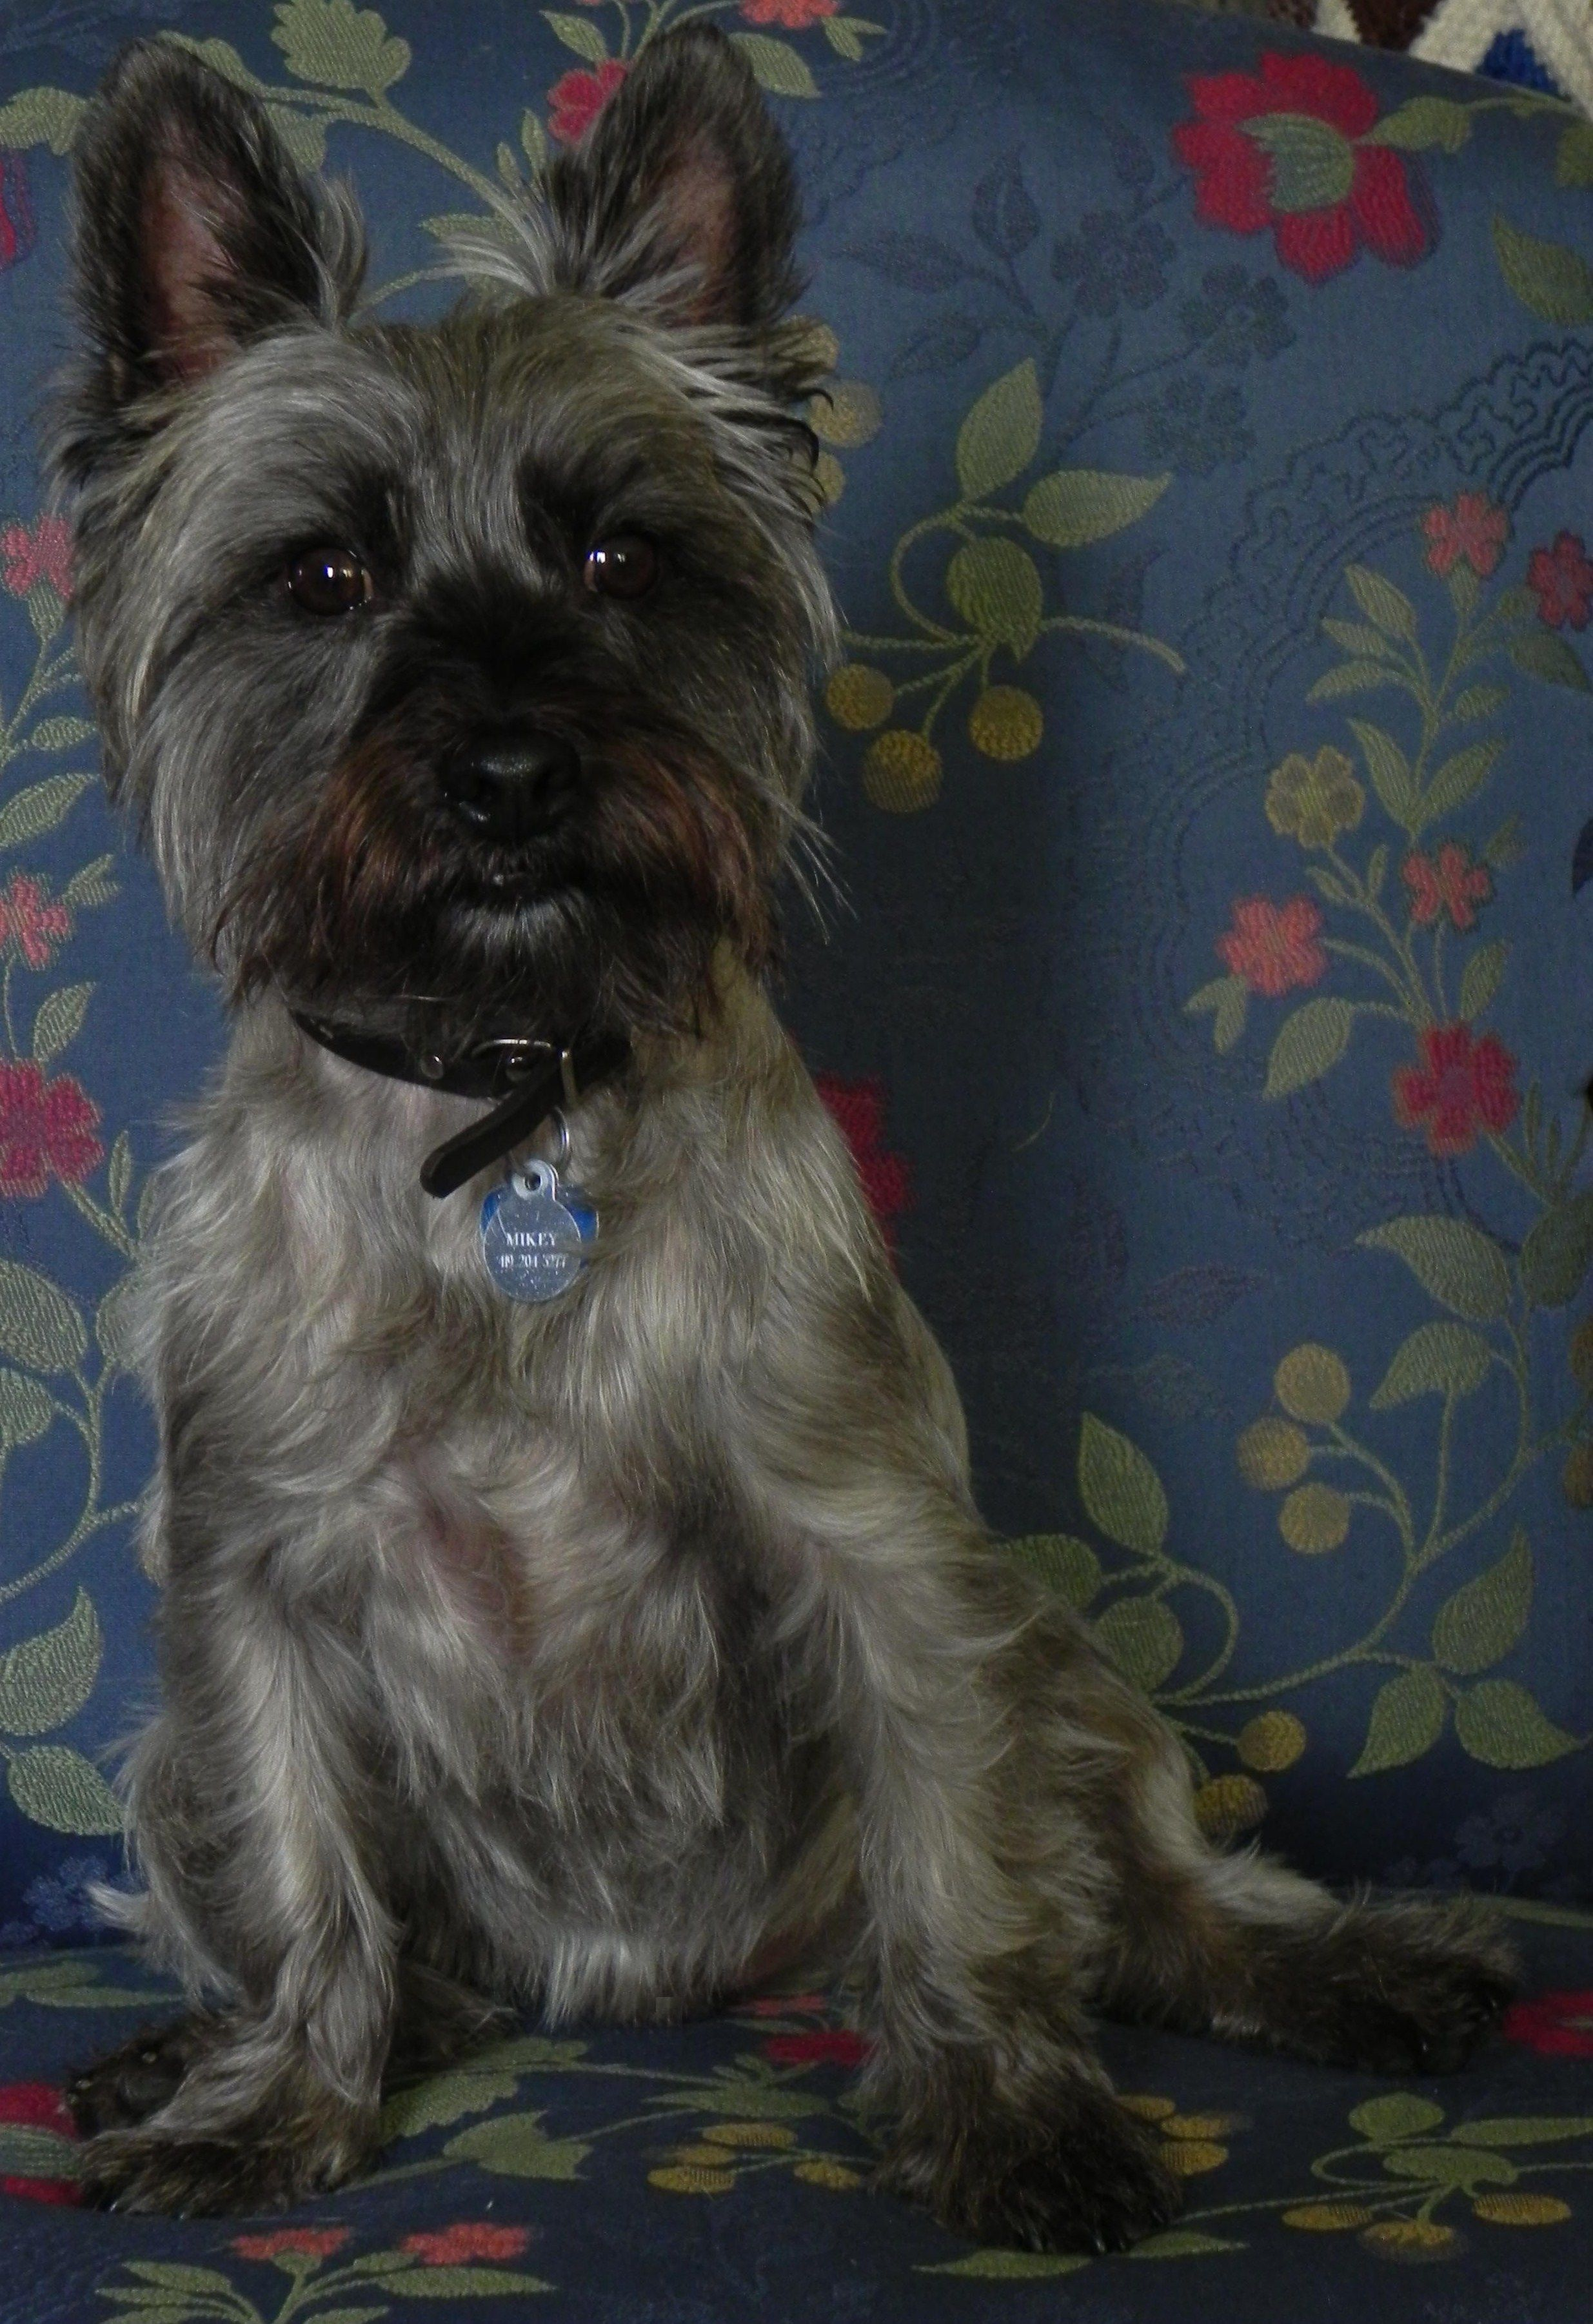 Mikey O Terrier Puppies Cairn Terrier Fluffy Animals